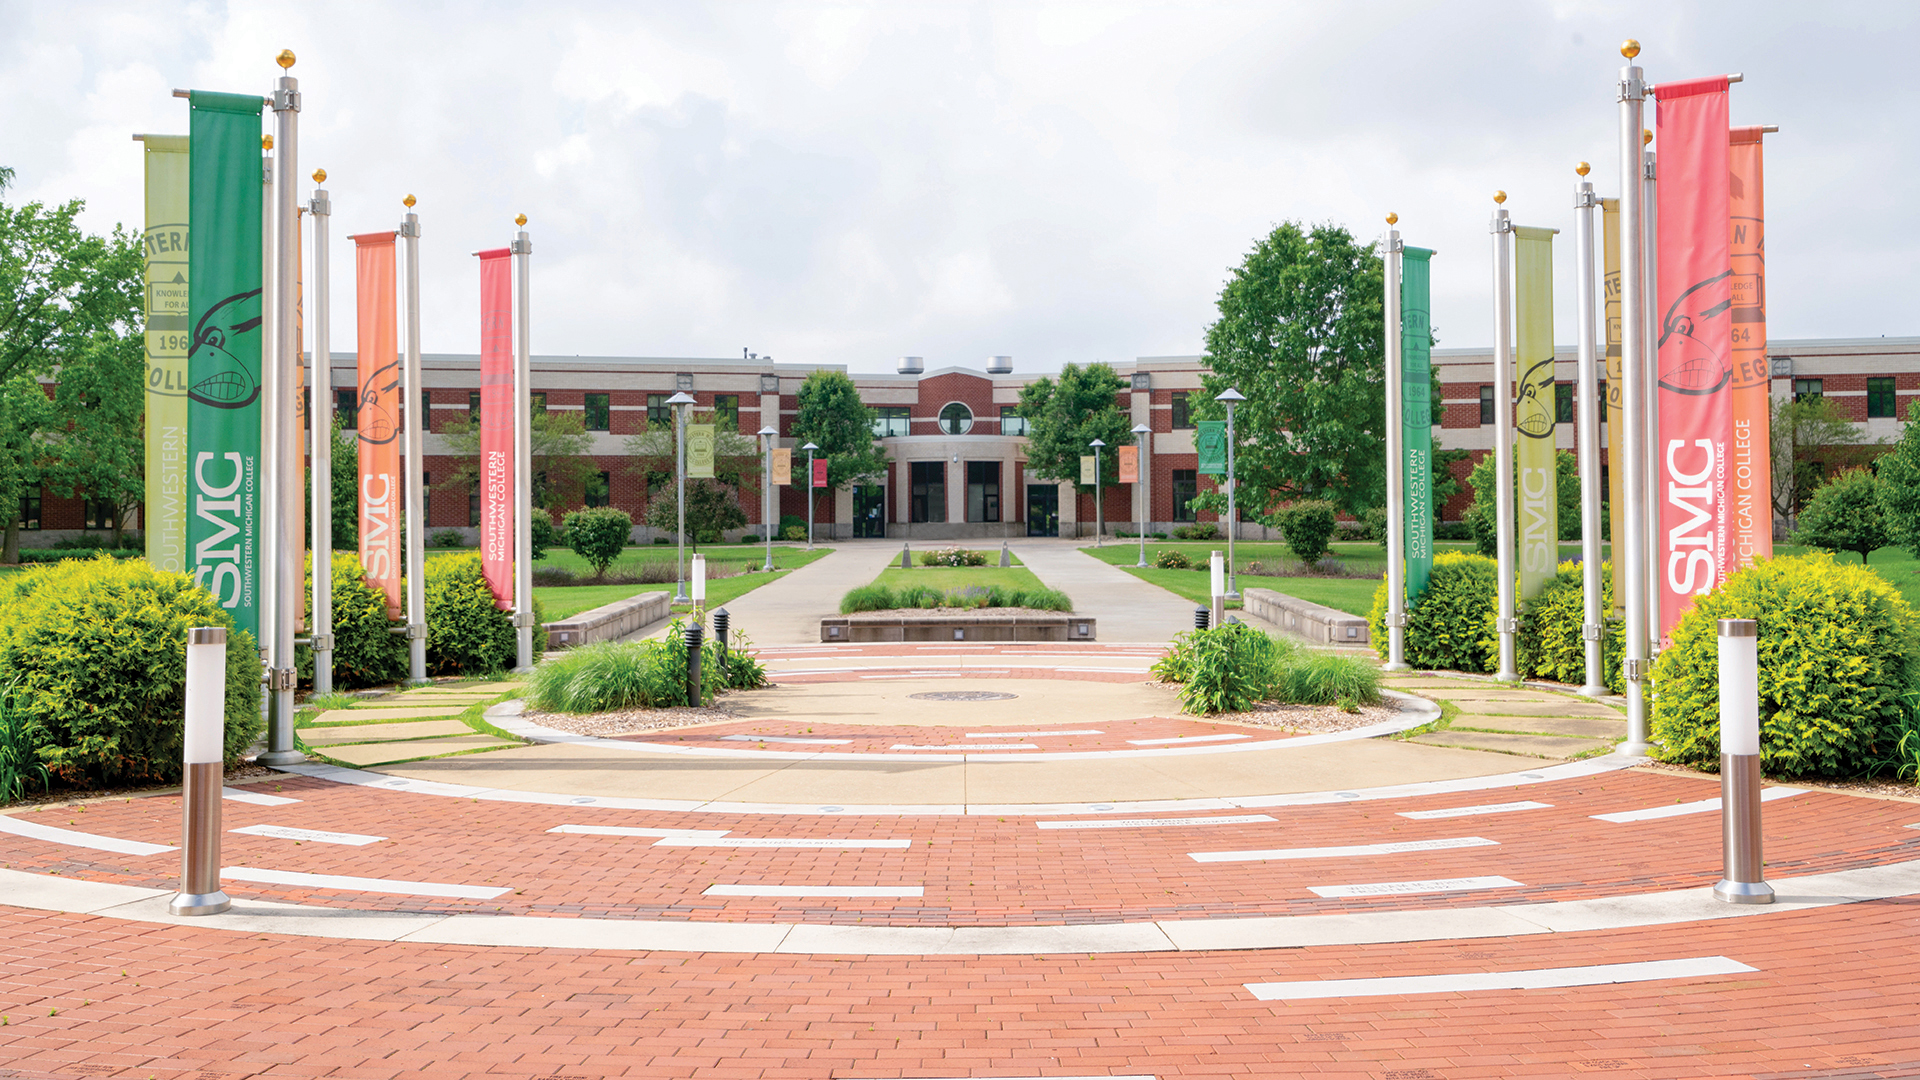 Alumni Plaza the center of the Dowagiac campus